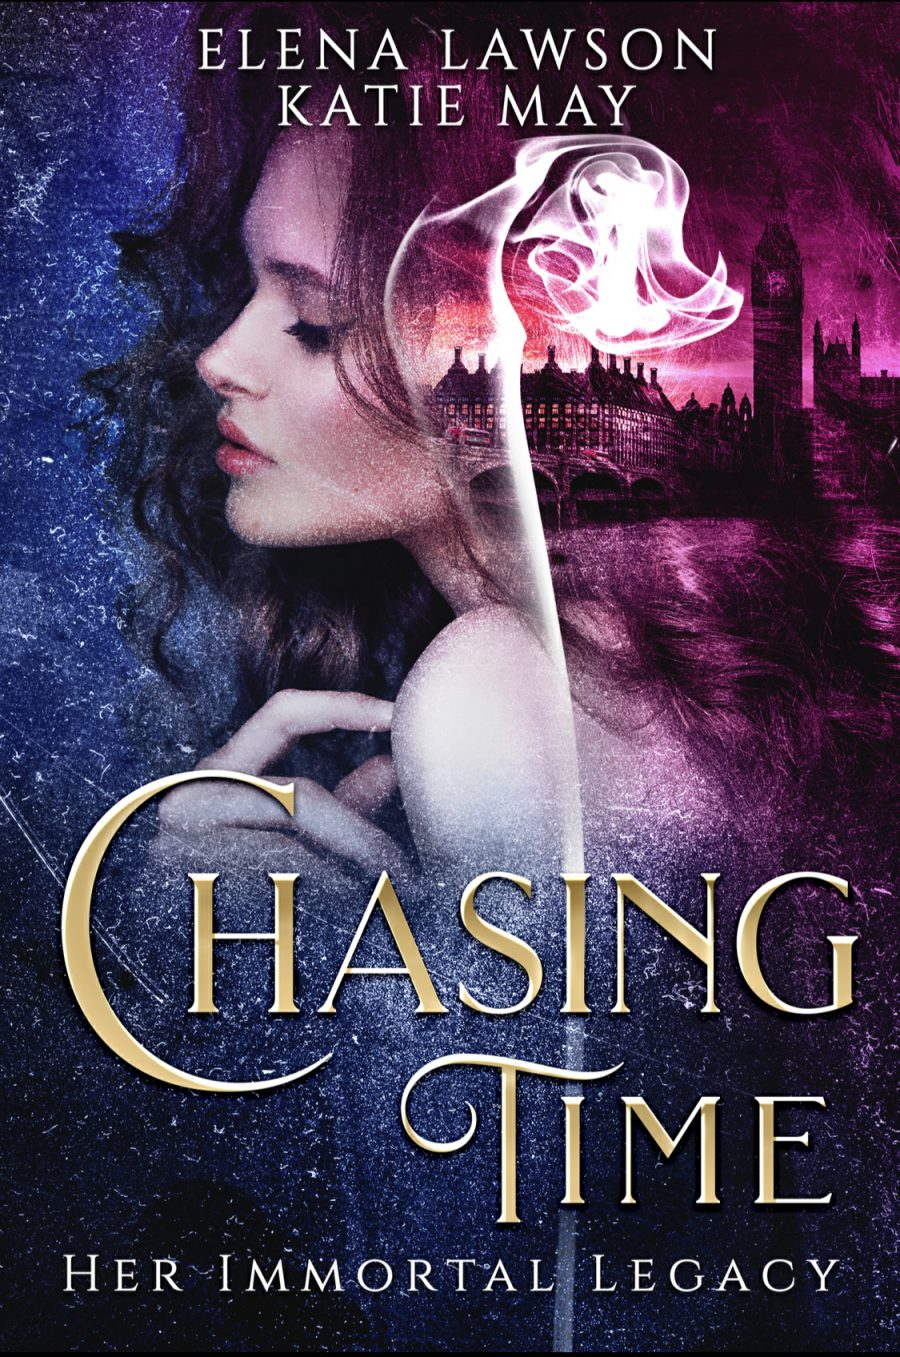 Chasing Time (Her Immortal Legacy - Book 1) by Katie May & Elena Lawson - A Book Review #BookReview #TimeTravel #RH #SlowBurn #KindleUnlimited #5Stars #KU